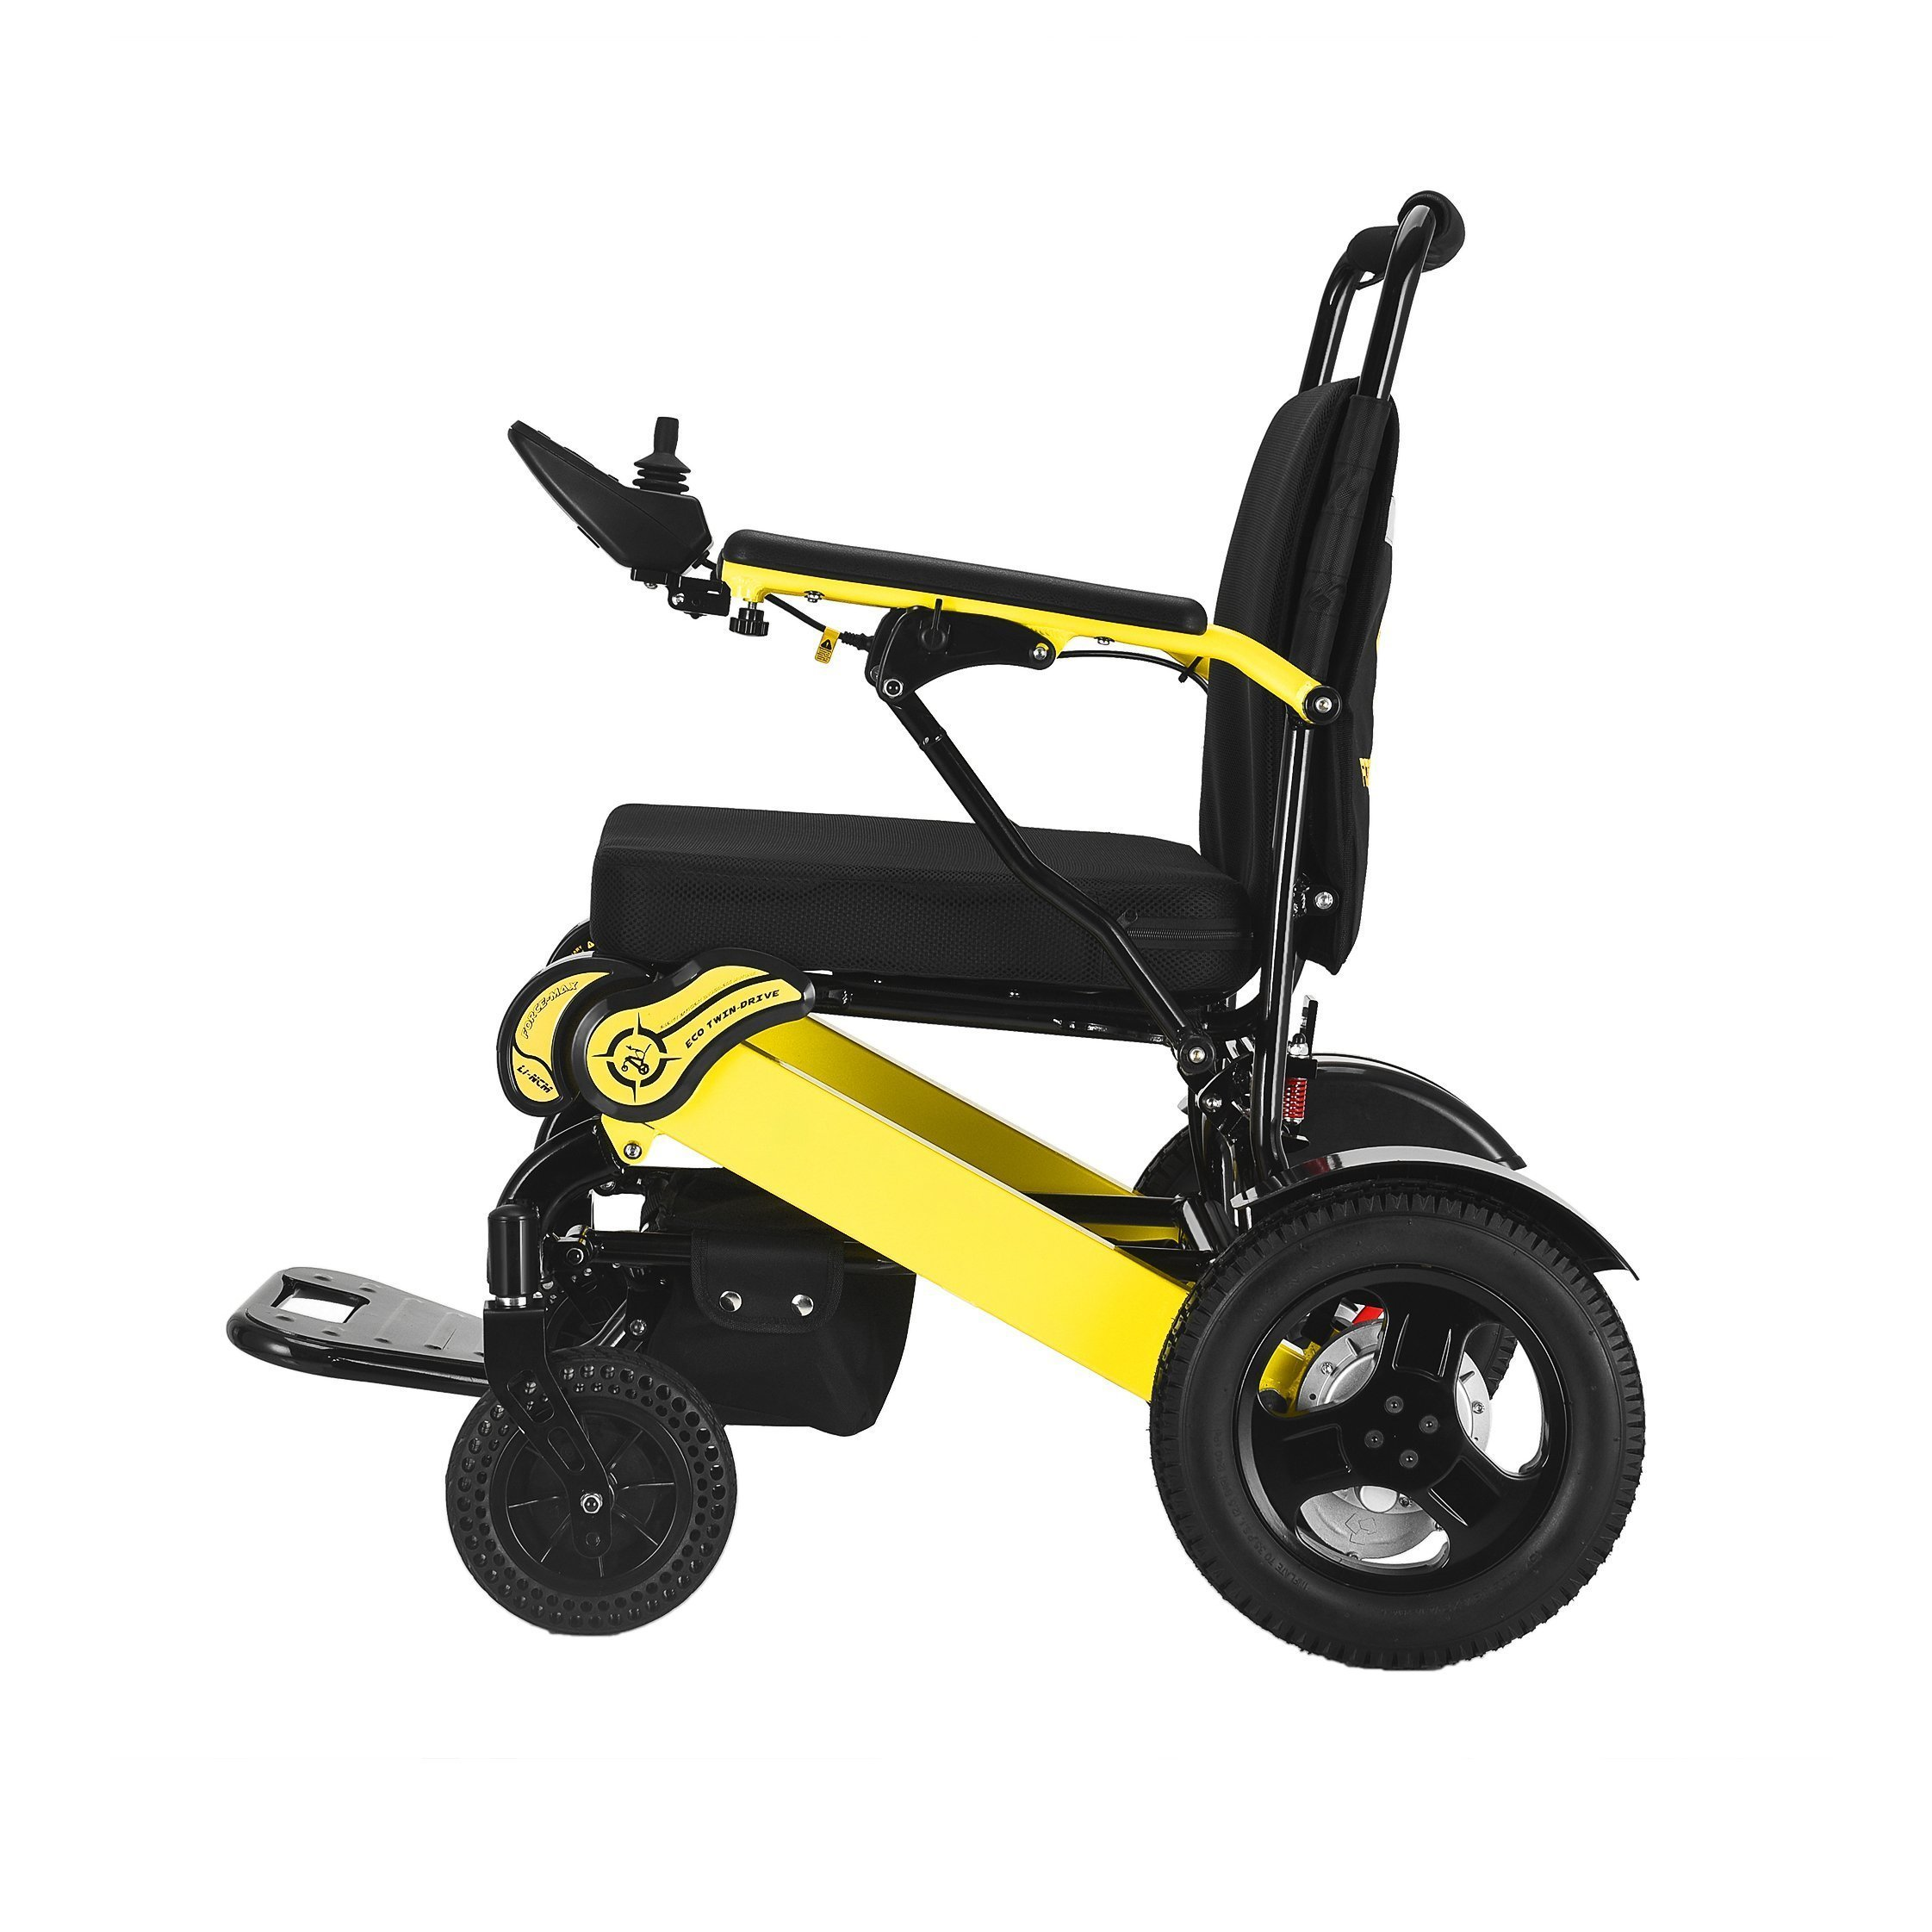 Foldable Sturdy Dual Motorized Powerful Electric Wheelchair Mobility Aids Ober Health 8